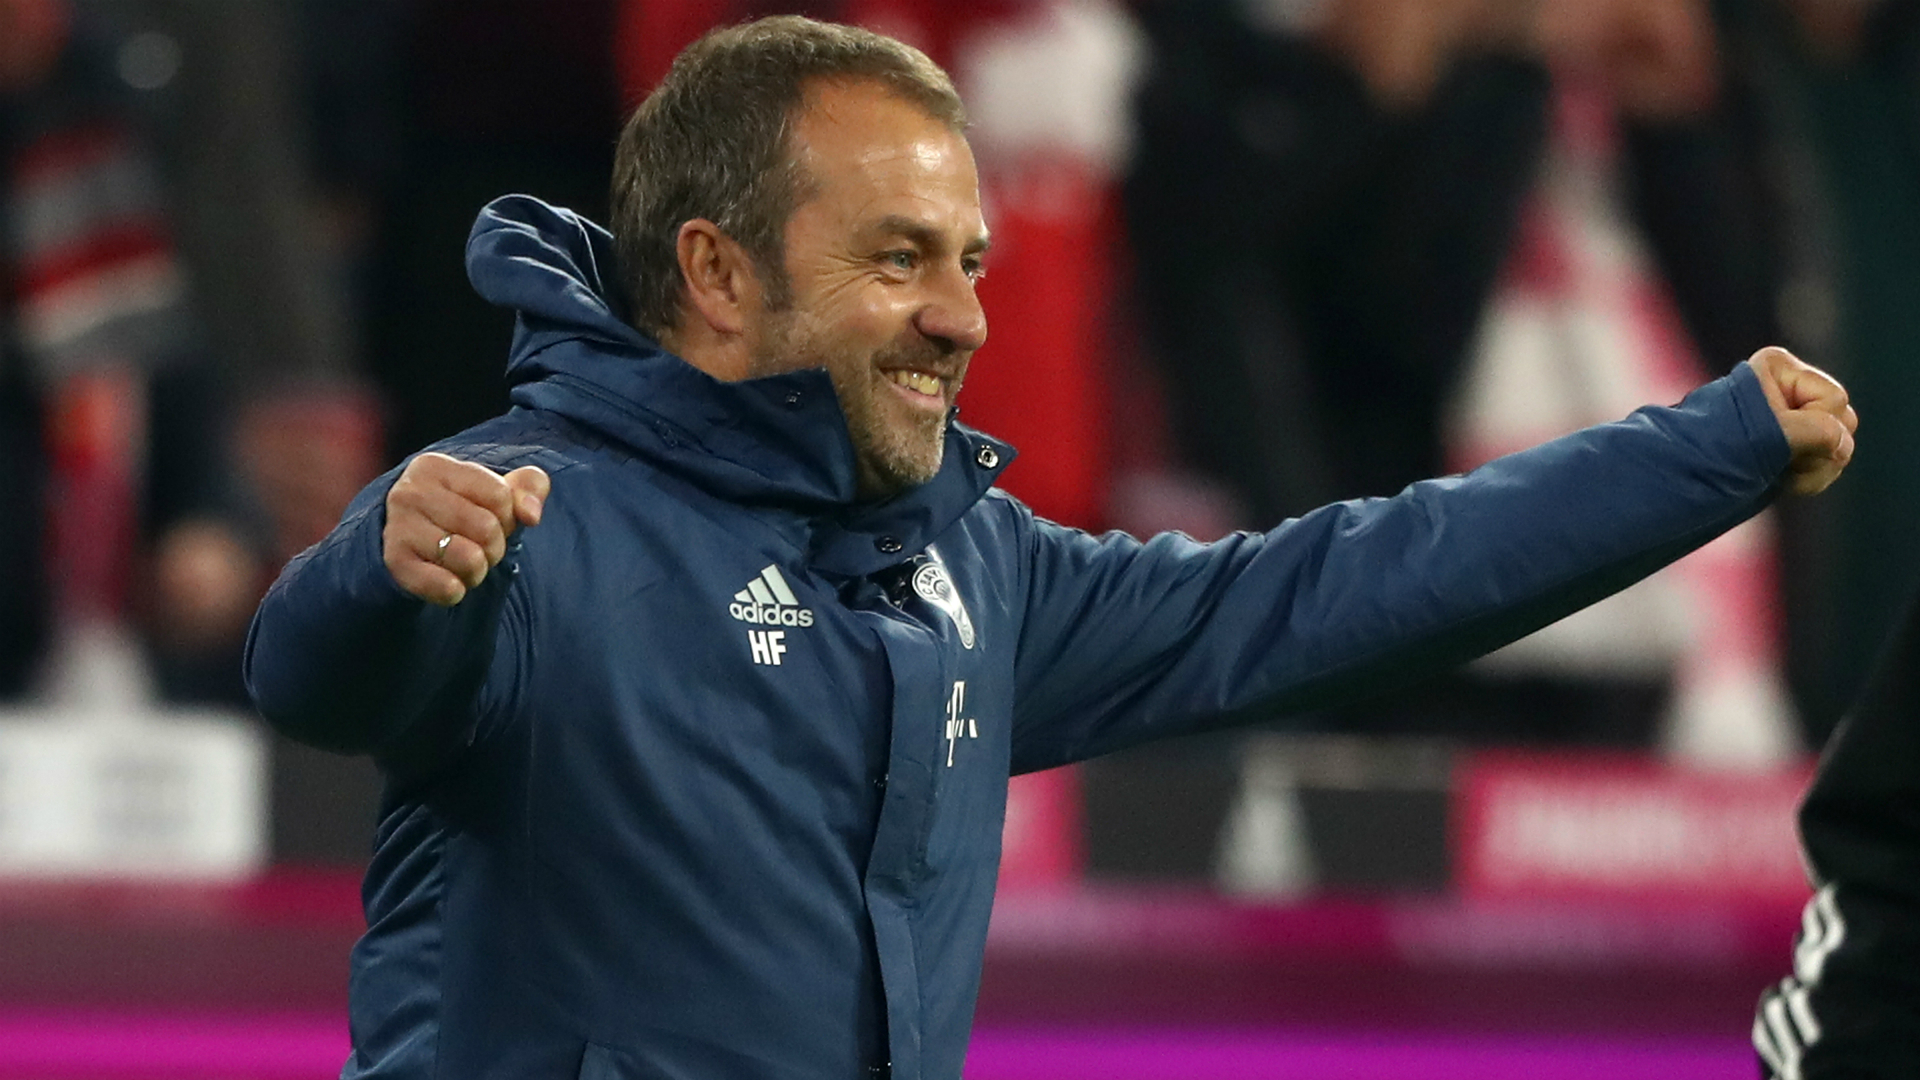 Flick 'totally happy' after winning both Bayern games